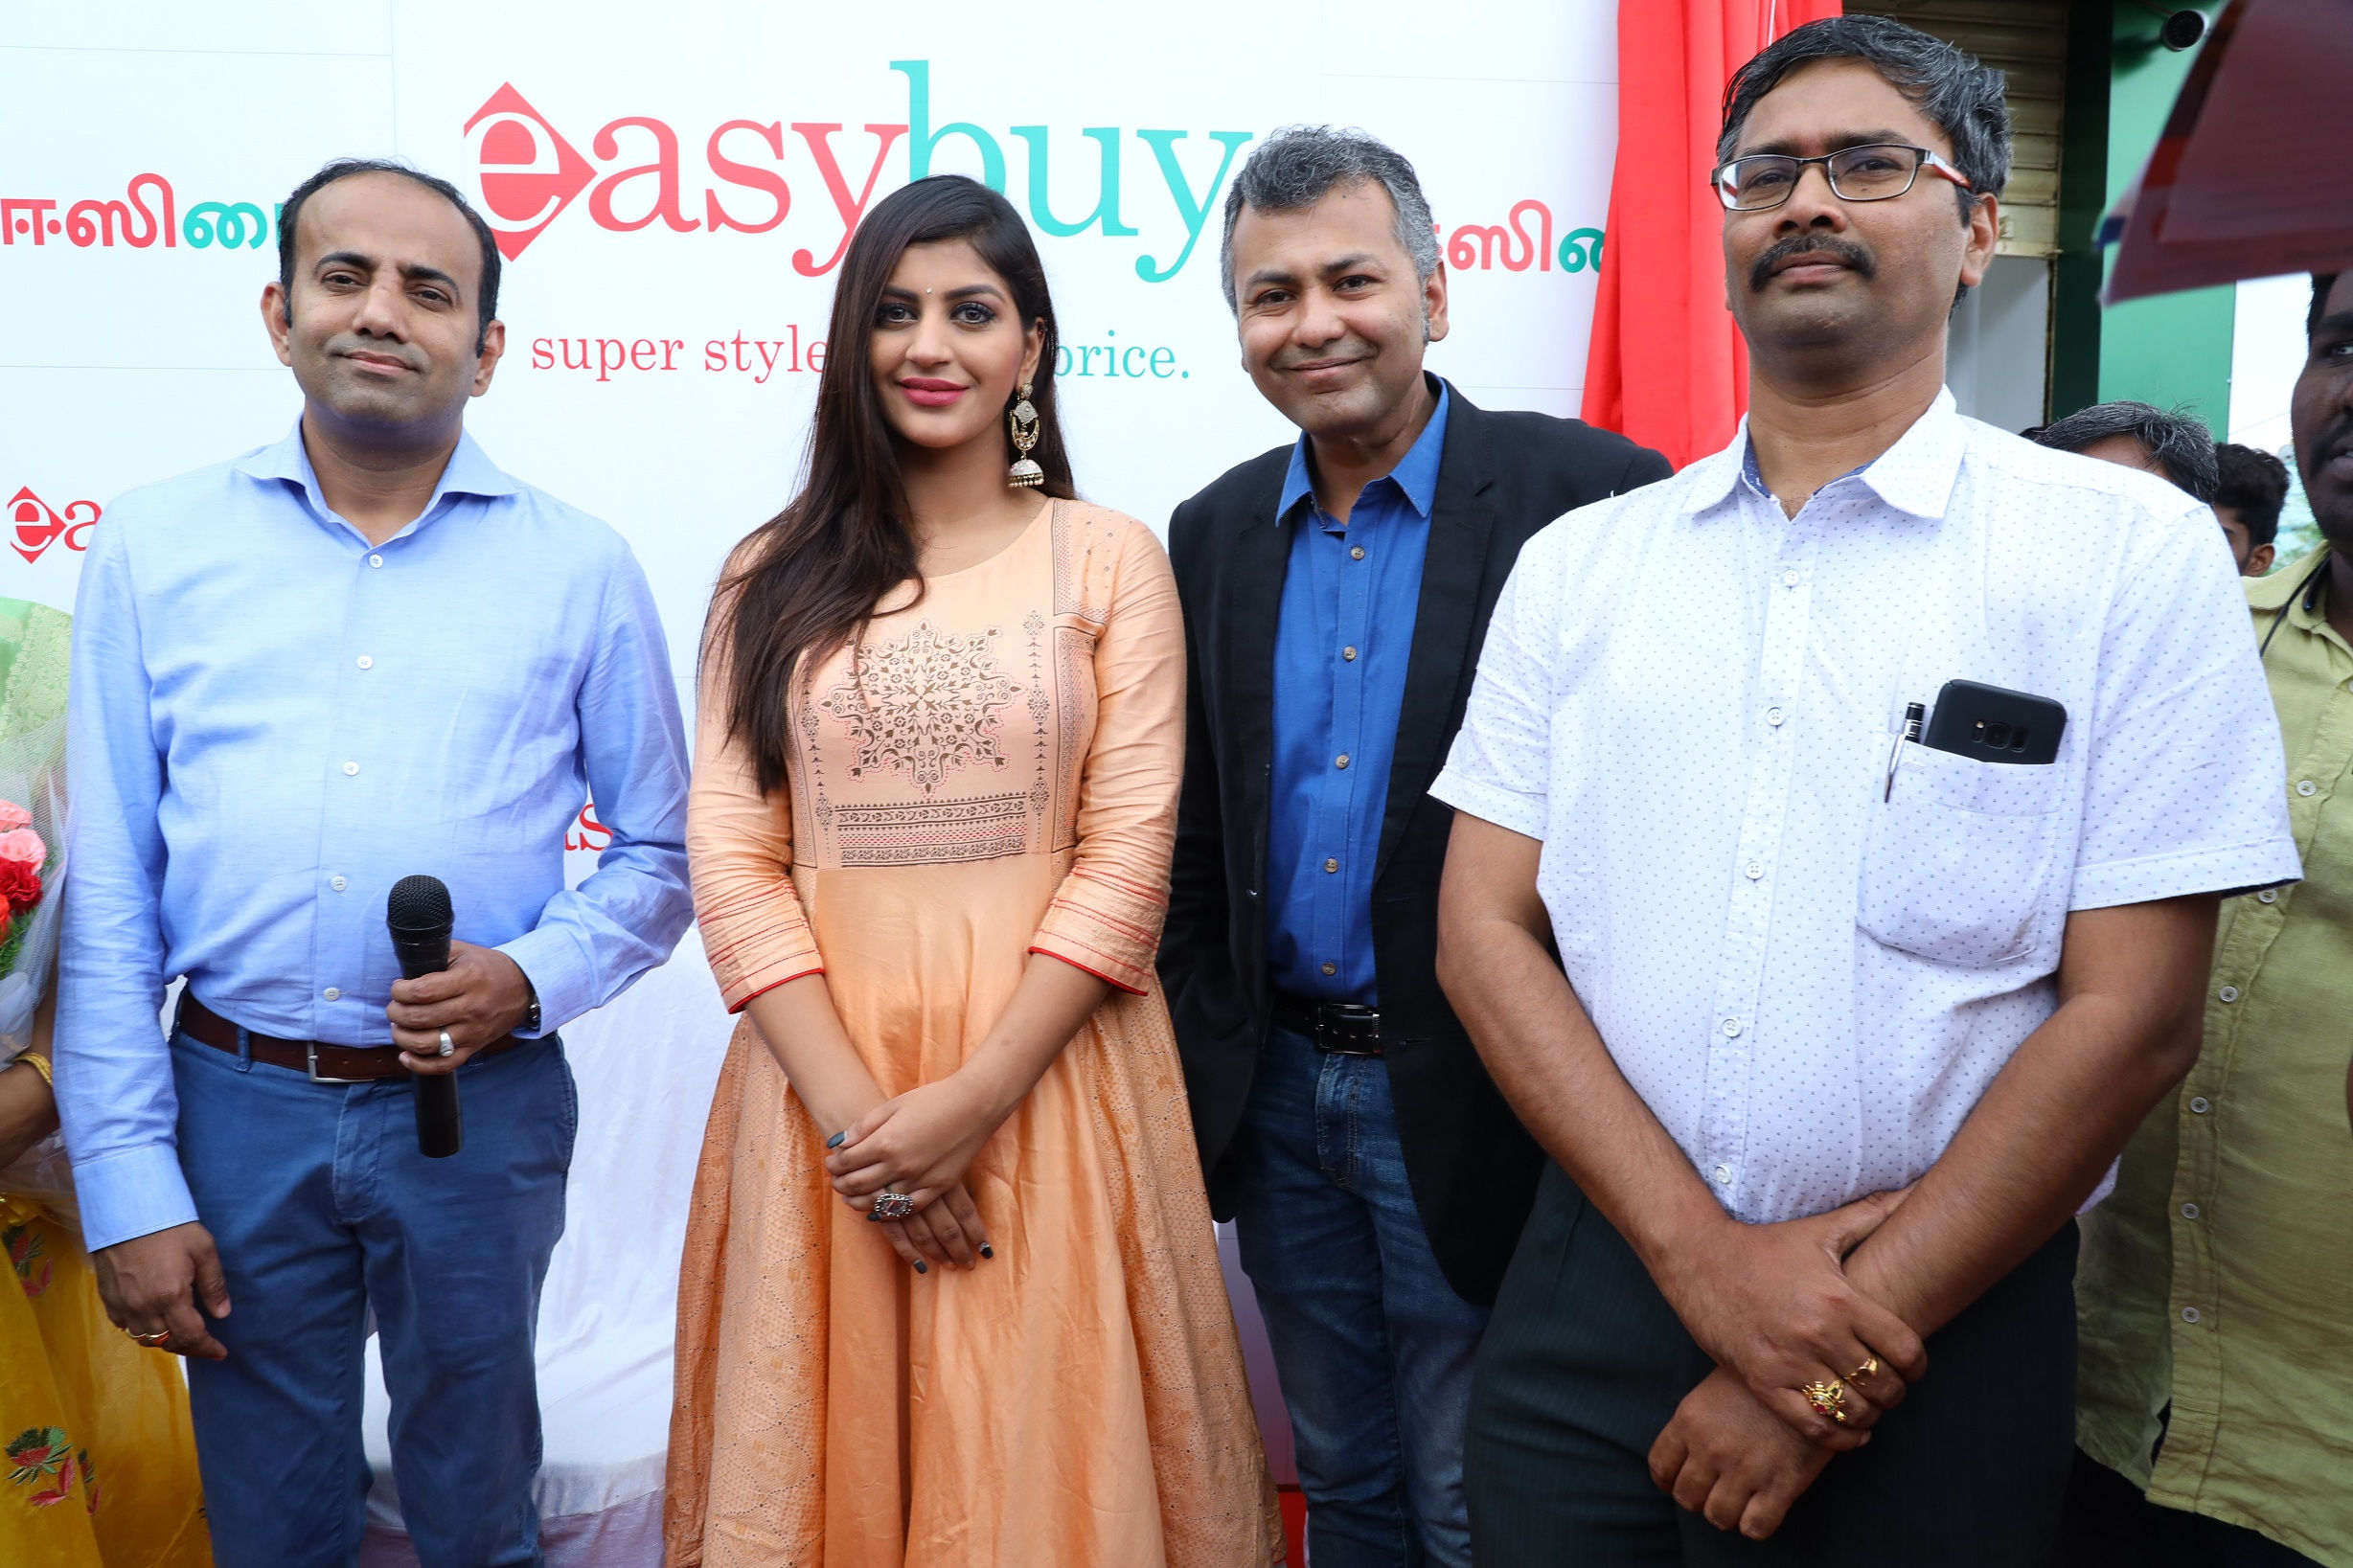 Actress Yashika Anand launched Easybuy's 12th Store in Tamilnadu at Ambattur